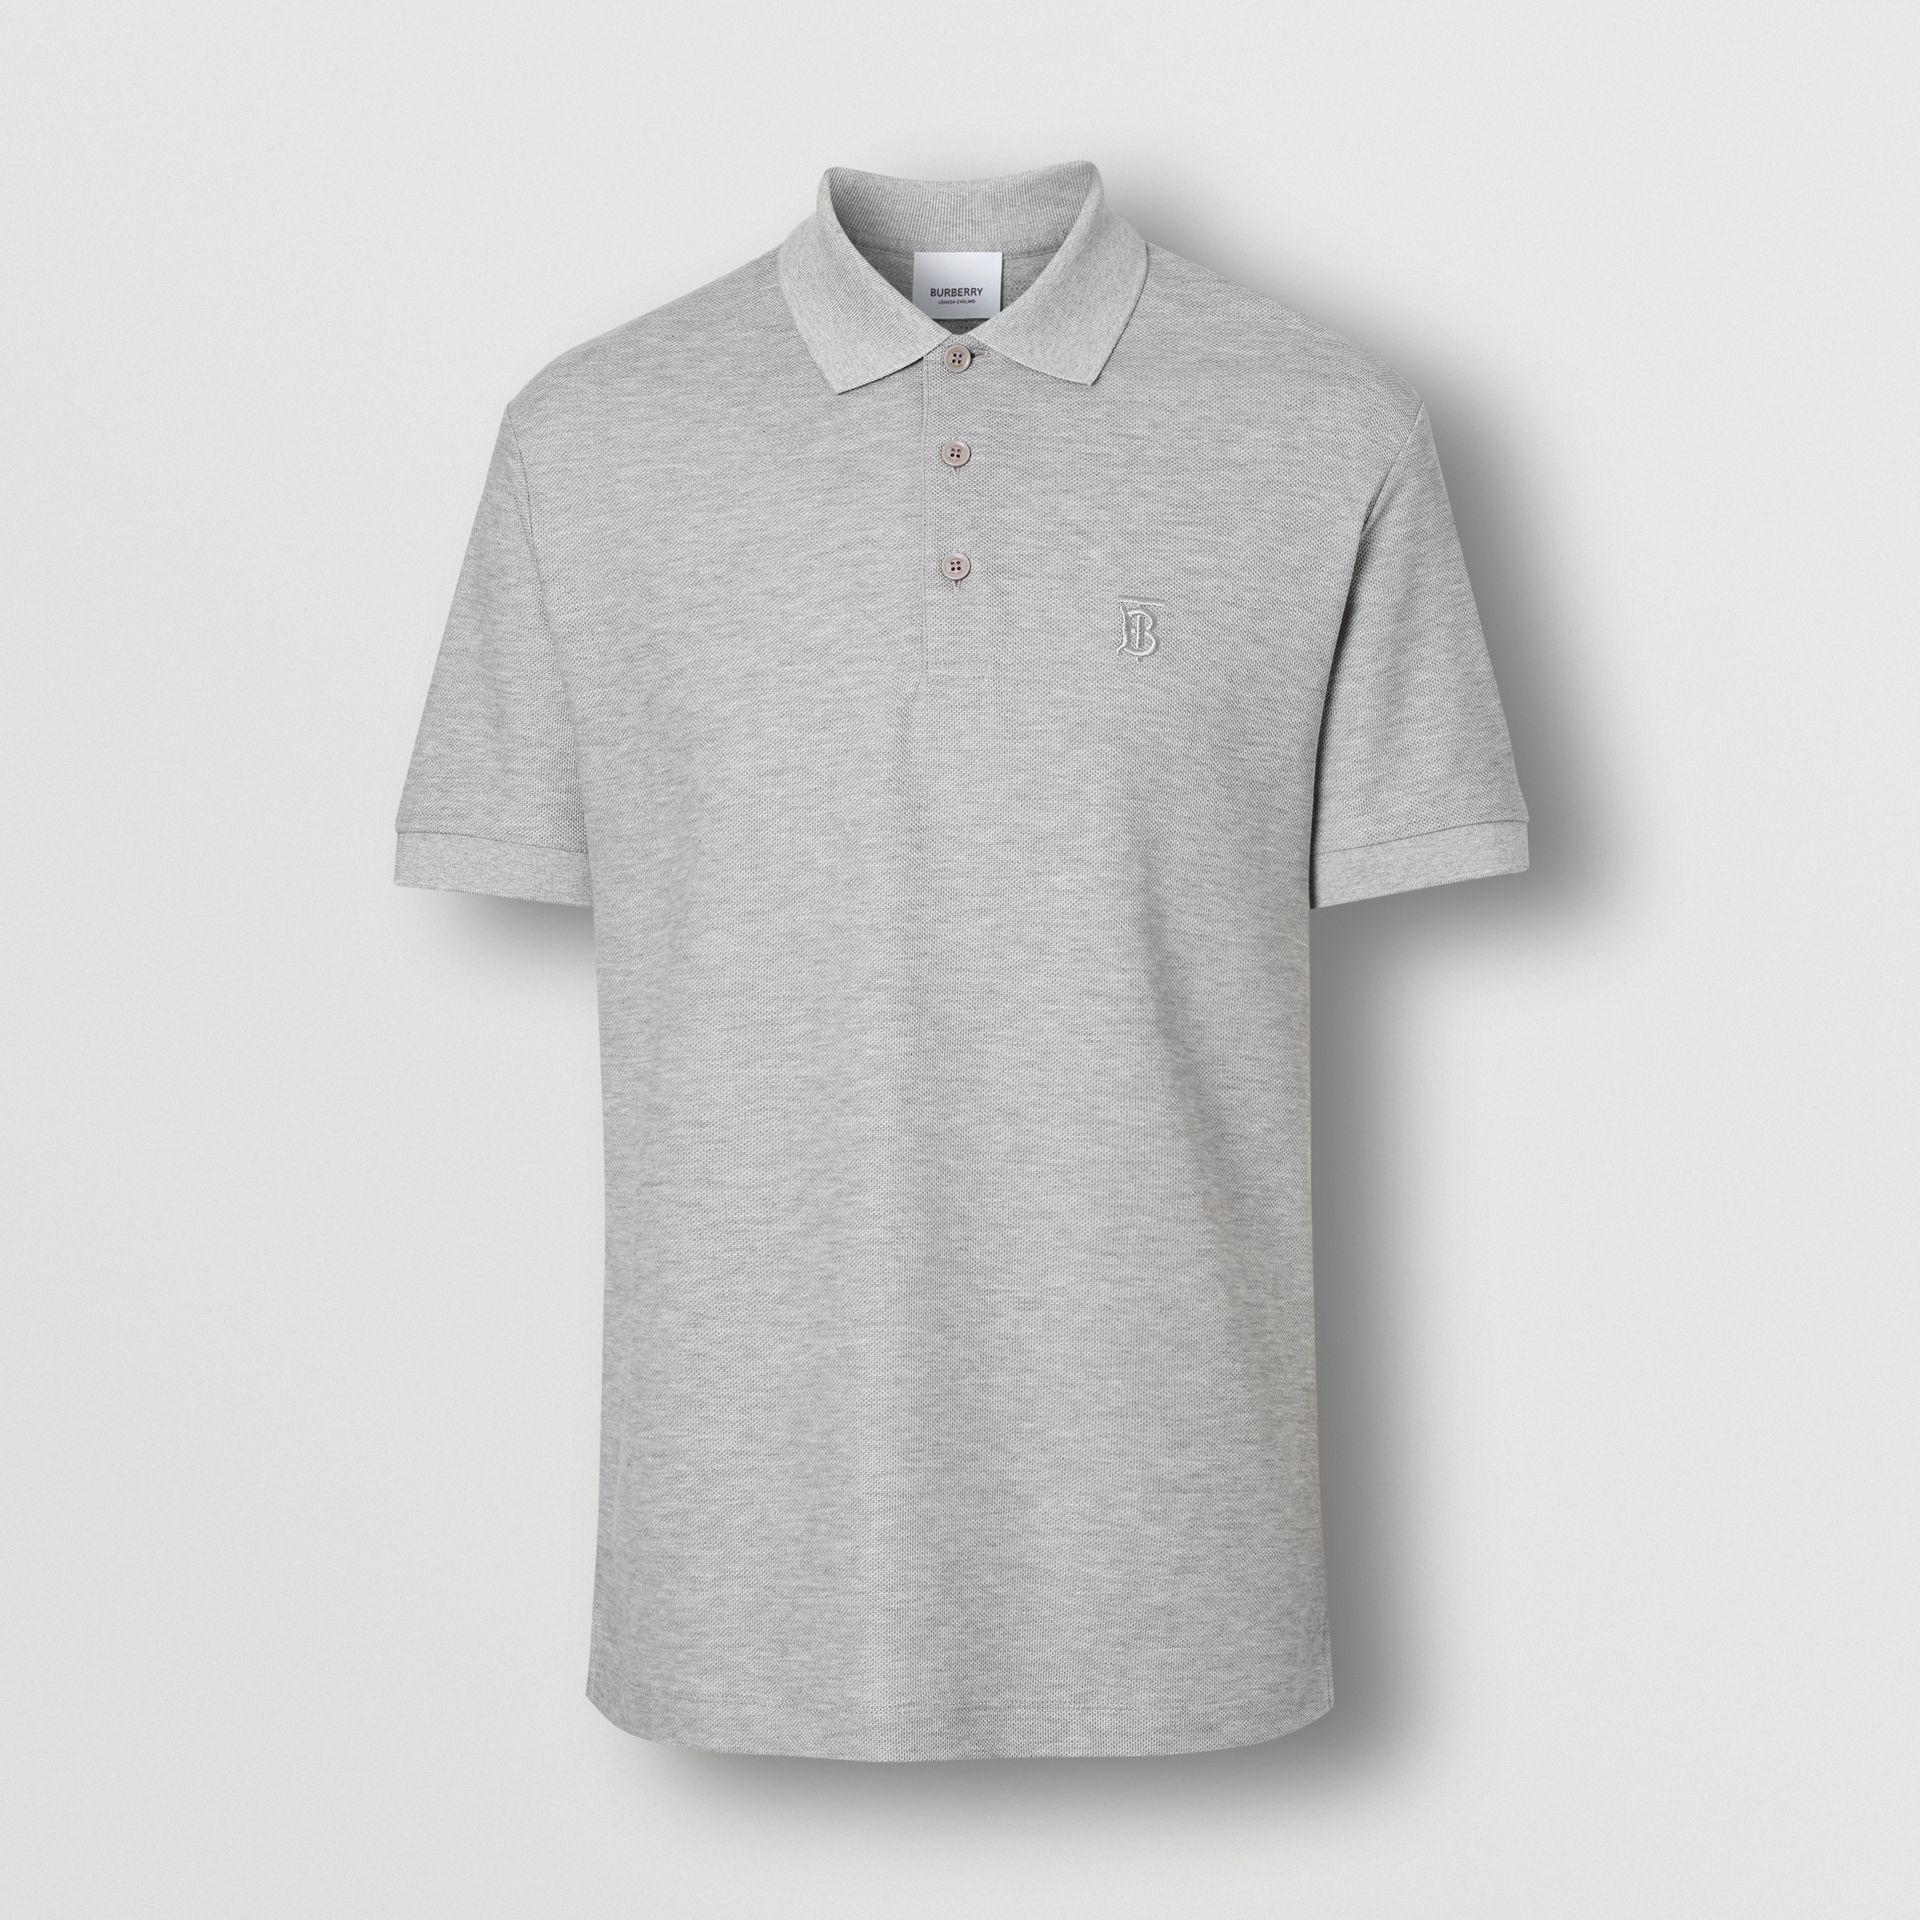 Monogram Motif Cotton Piqué Polo Shirt in Pale Grey Melange - Men | Burberry Canada - gallery image 3